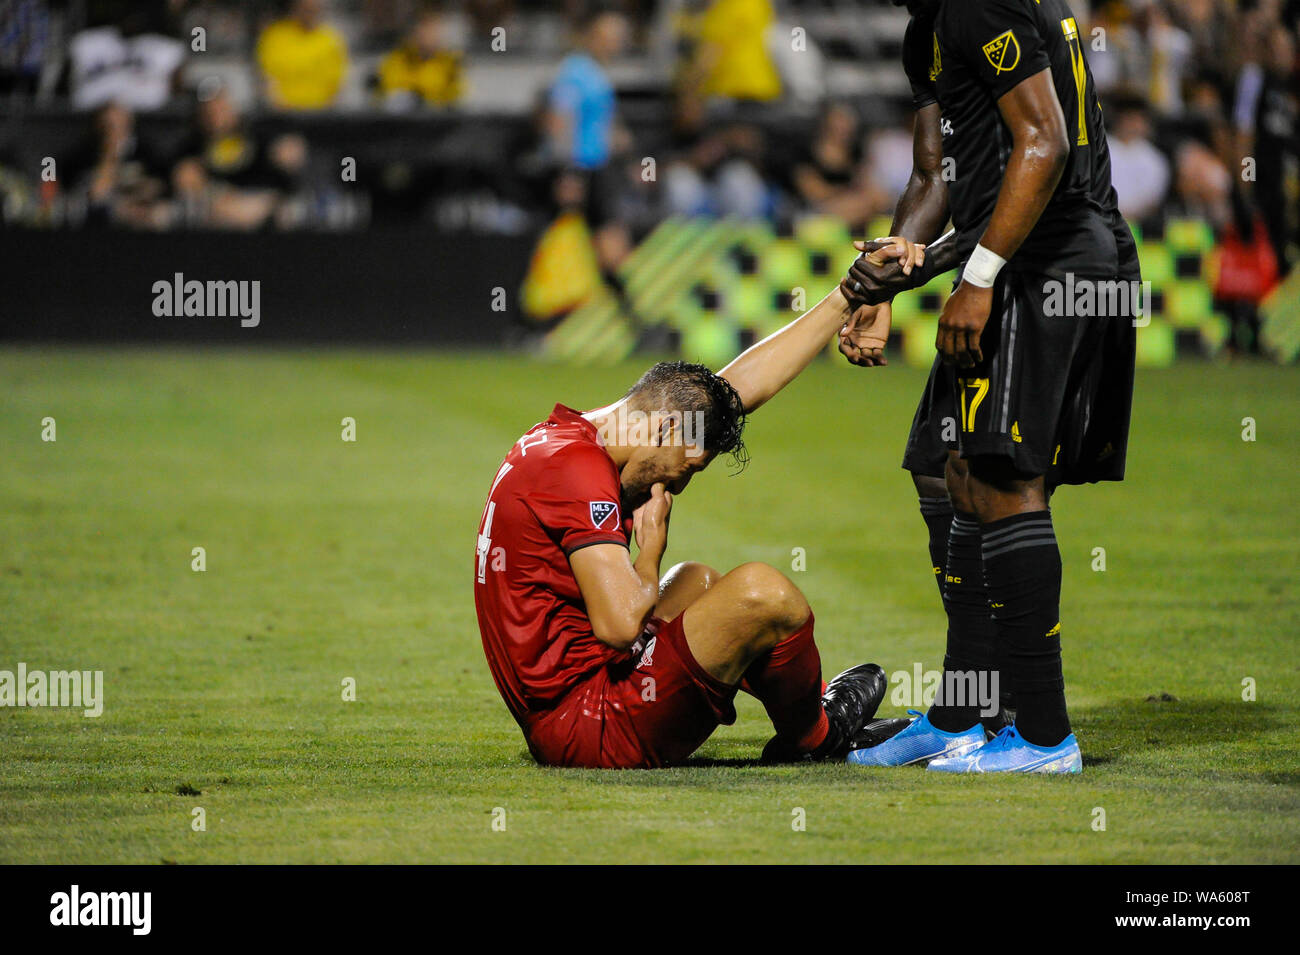 Saturday, August 17, 2019: Toronto FC defender Omar Gonzalez (44) is helped up in the second half of the match between Toronto FC and Columbus Crew SC at MAPFRE Stadium, in Columbus OH. Mandatory Photo Credit: Dorn Byg/Cal Sport Media. Toronto FC 2 - Columbus Crew SC 2 at the end of the first half. Stock Photo